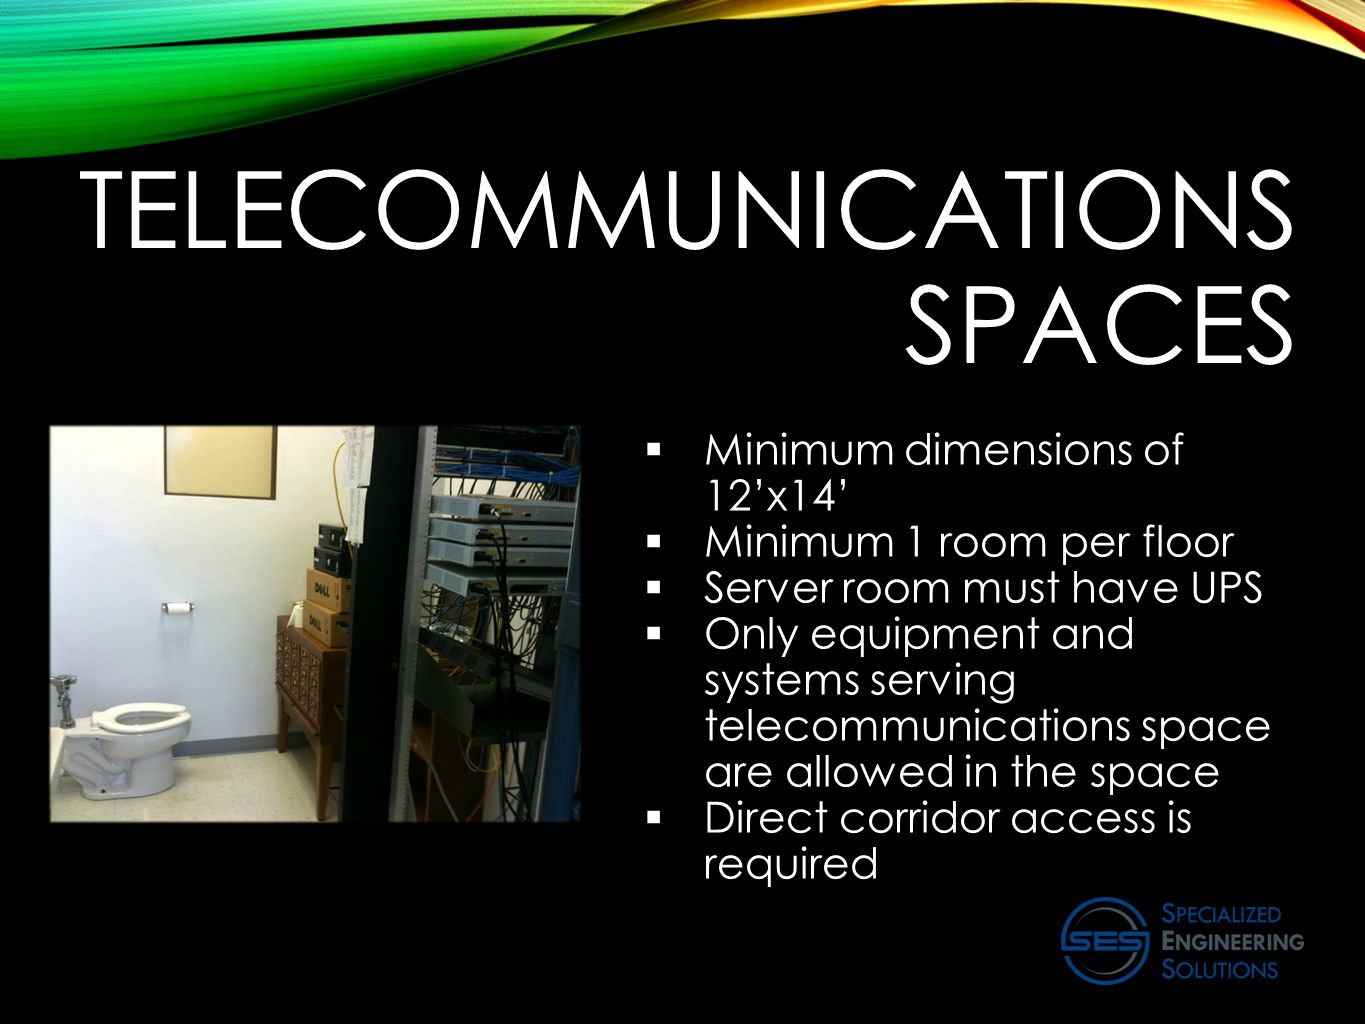 TELECOMMUNICATIONS SPACES  Minimum dimensions of 12'x14'  Minimum 1 room per floor  Server room must have UPS  Only equipment and systems serving telecommunications space are allowed in the space  Direct corridor access is required